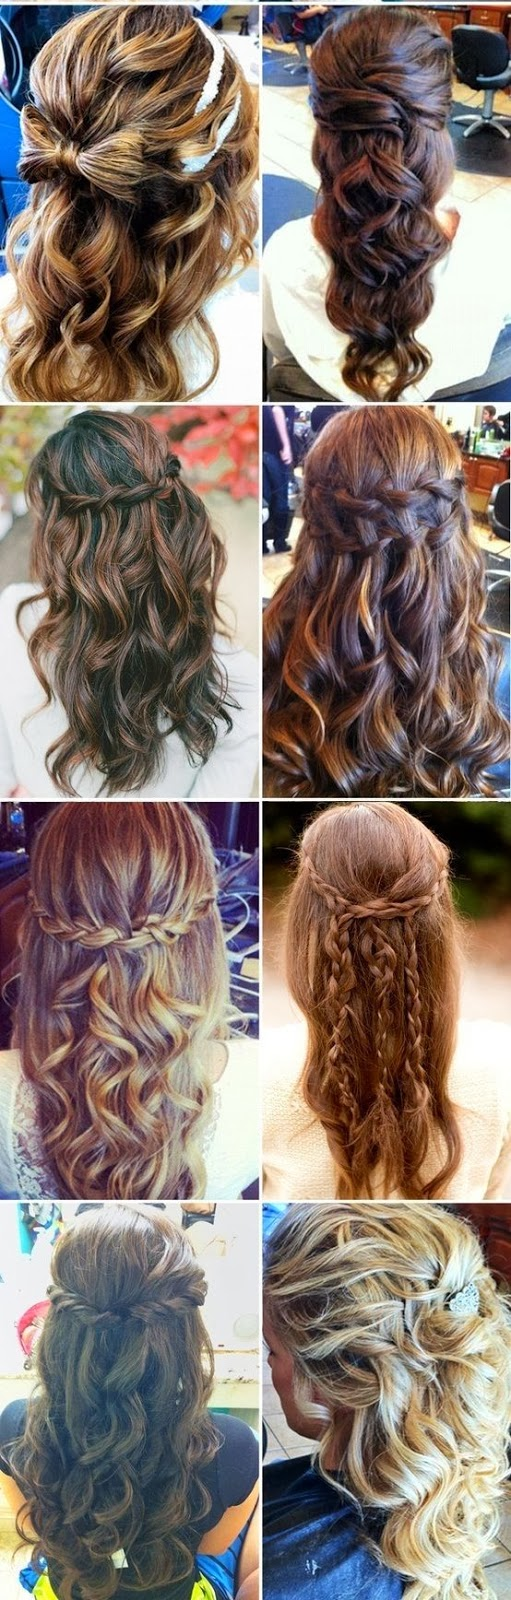 different hairstyles for women hairstyles pinterest hair style